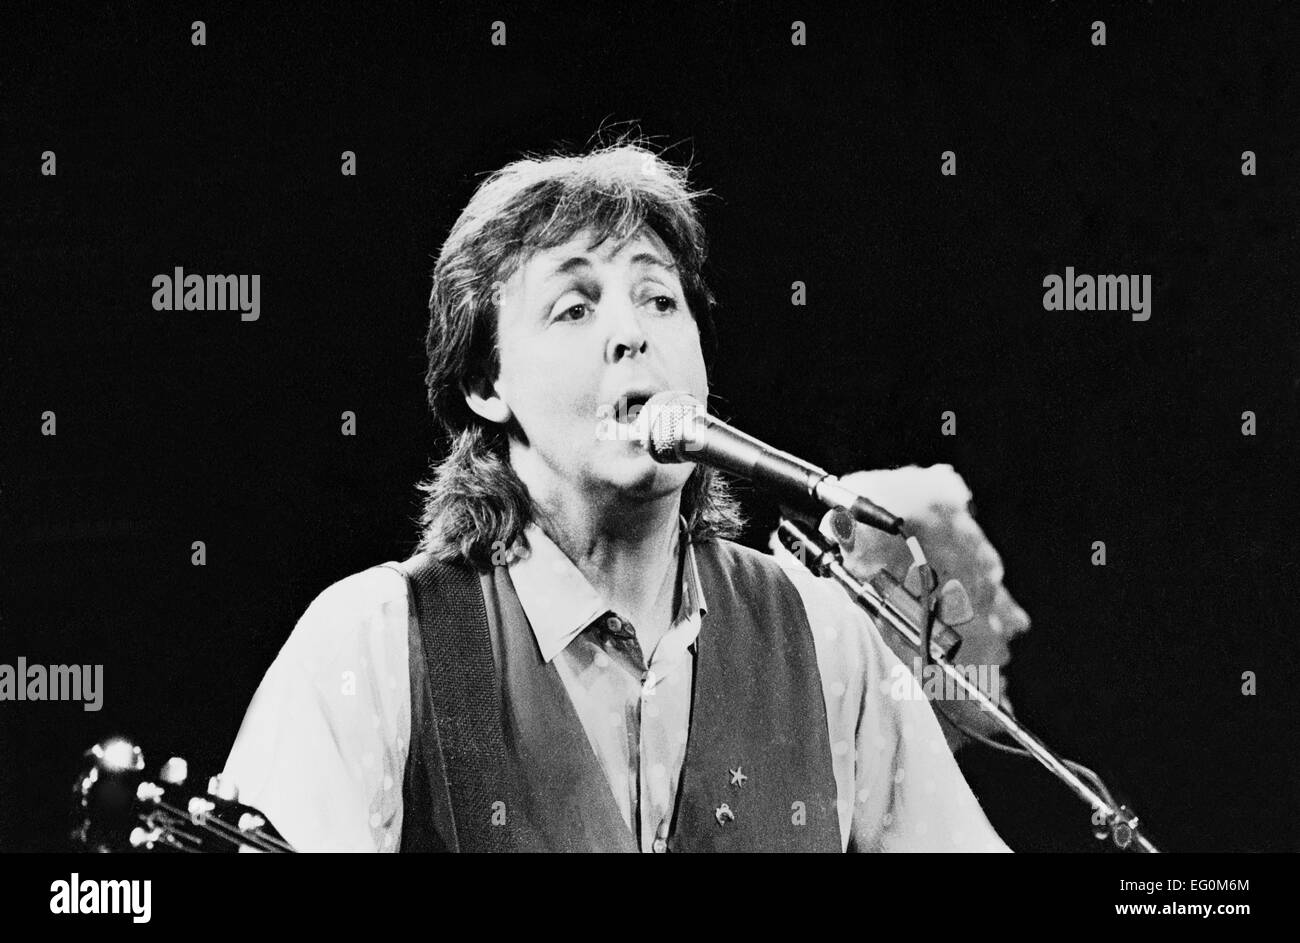 Musician Paul McCartney on stage in Italy during his 1989 World Tour - Stock Image